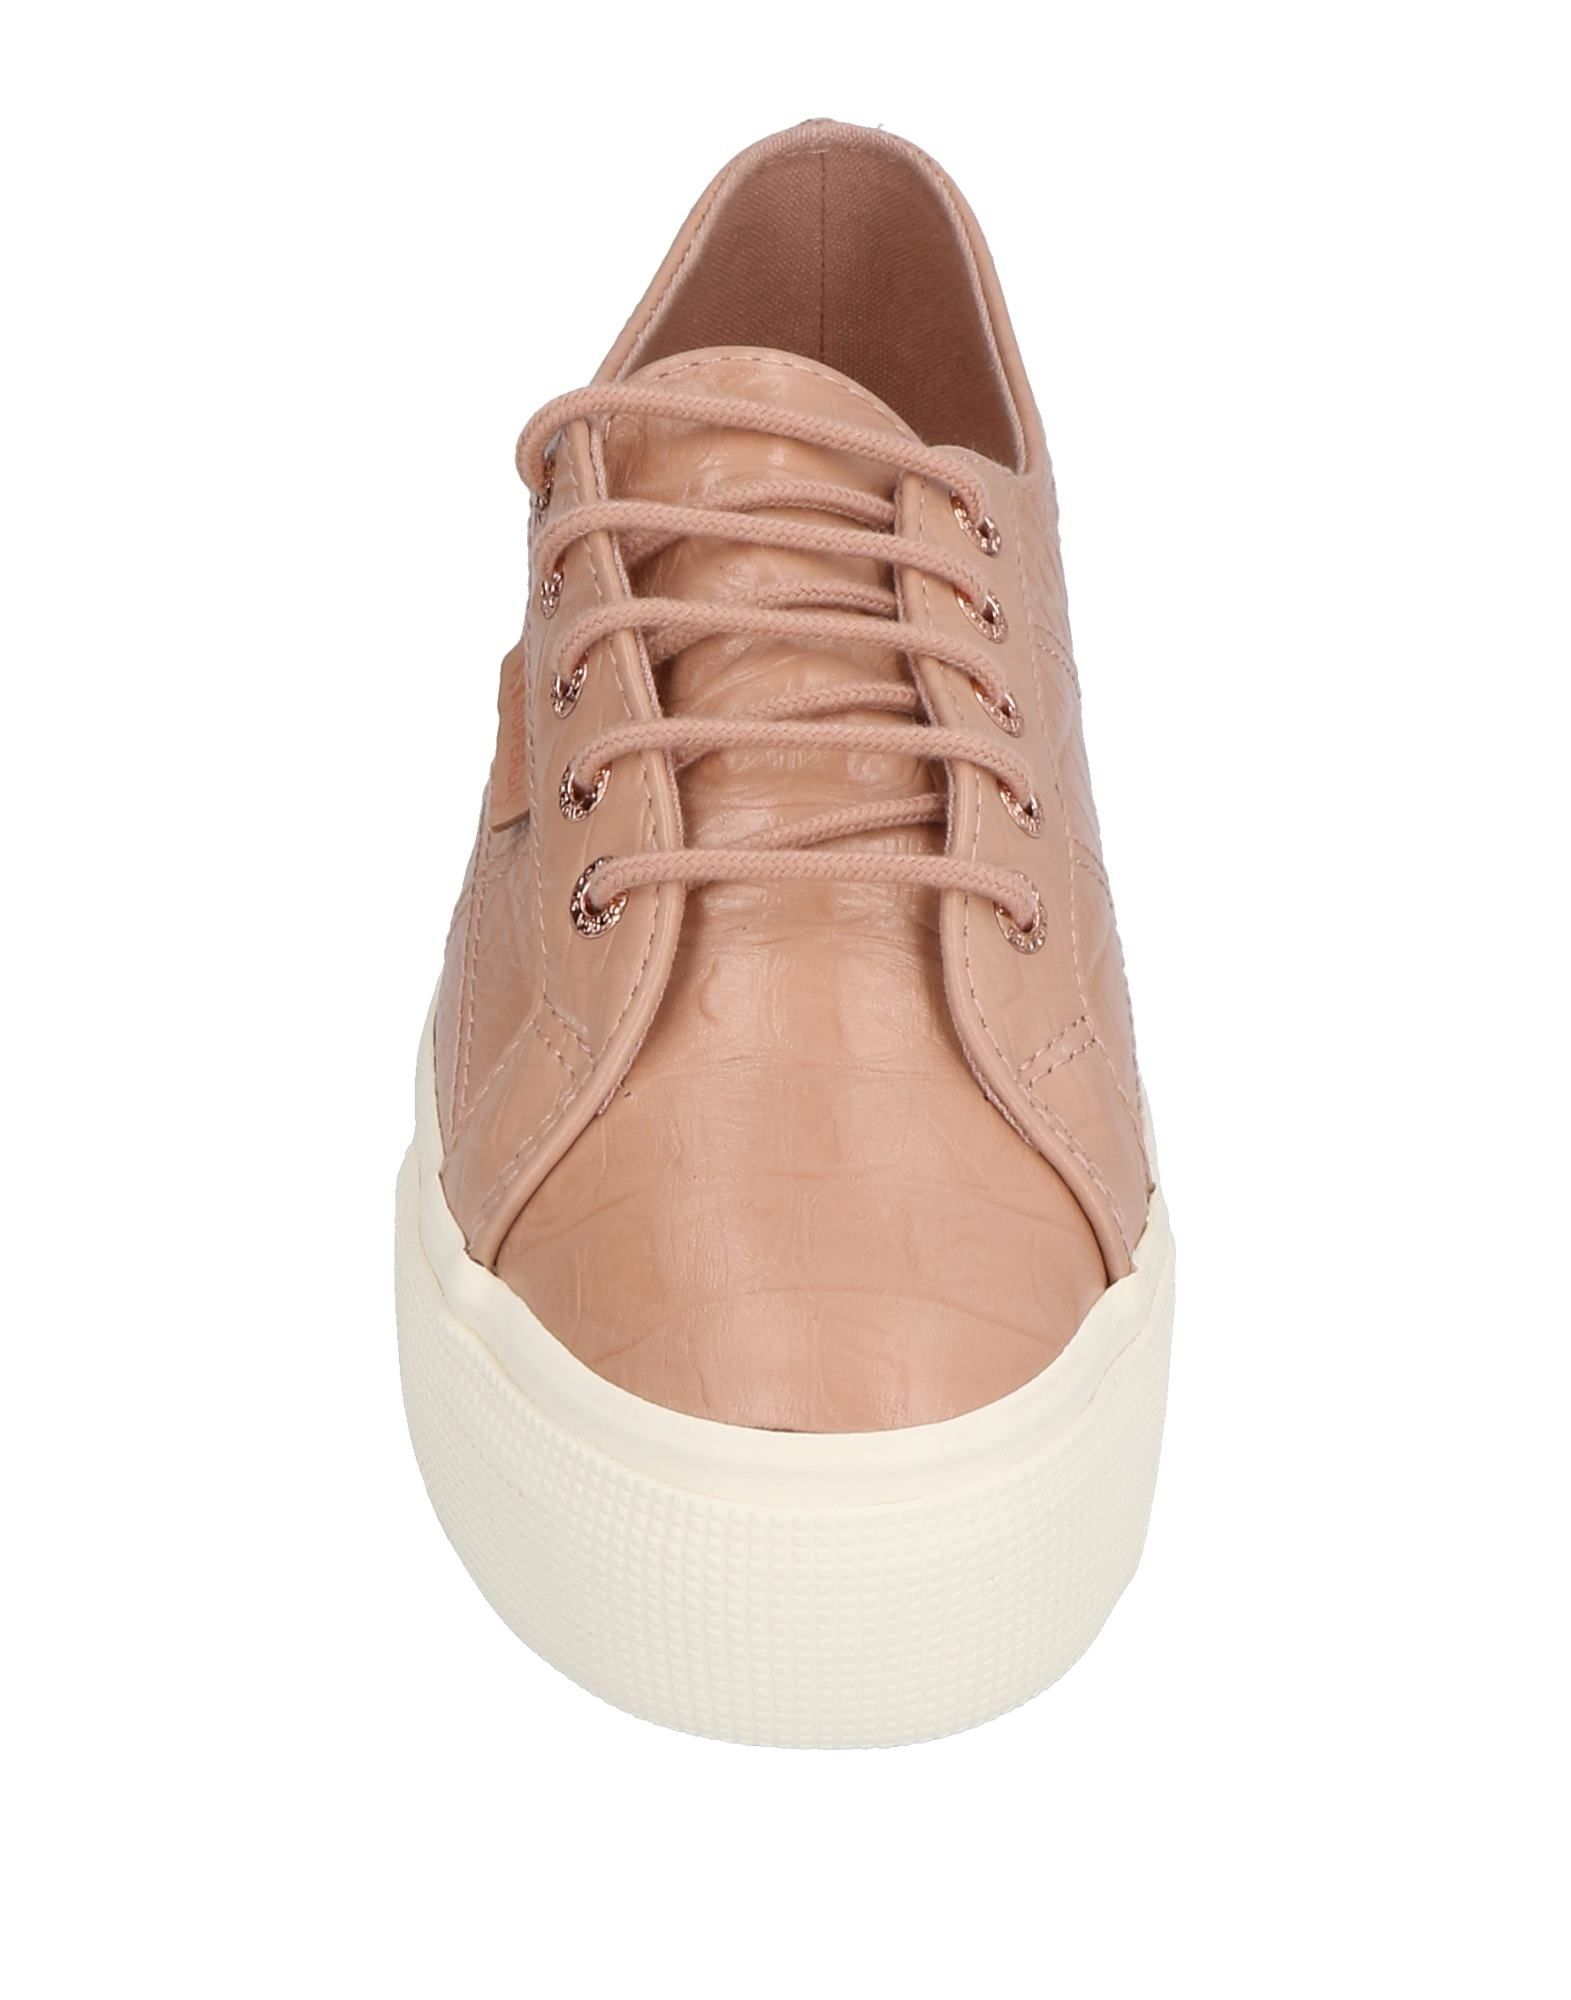 Superga® Sneakers Damen  11486535QJ 11486535QJ   f7b54a